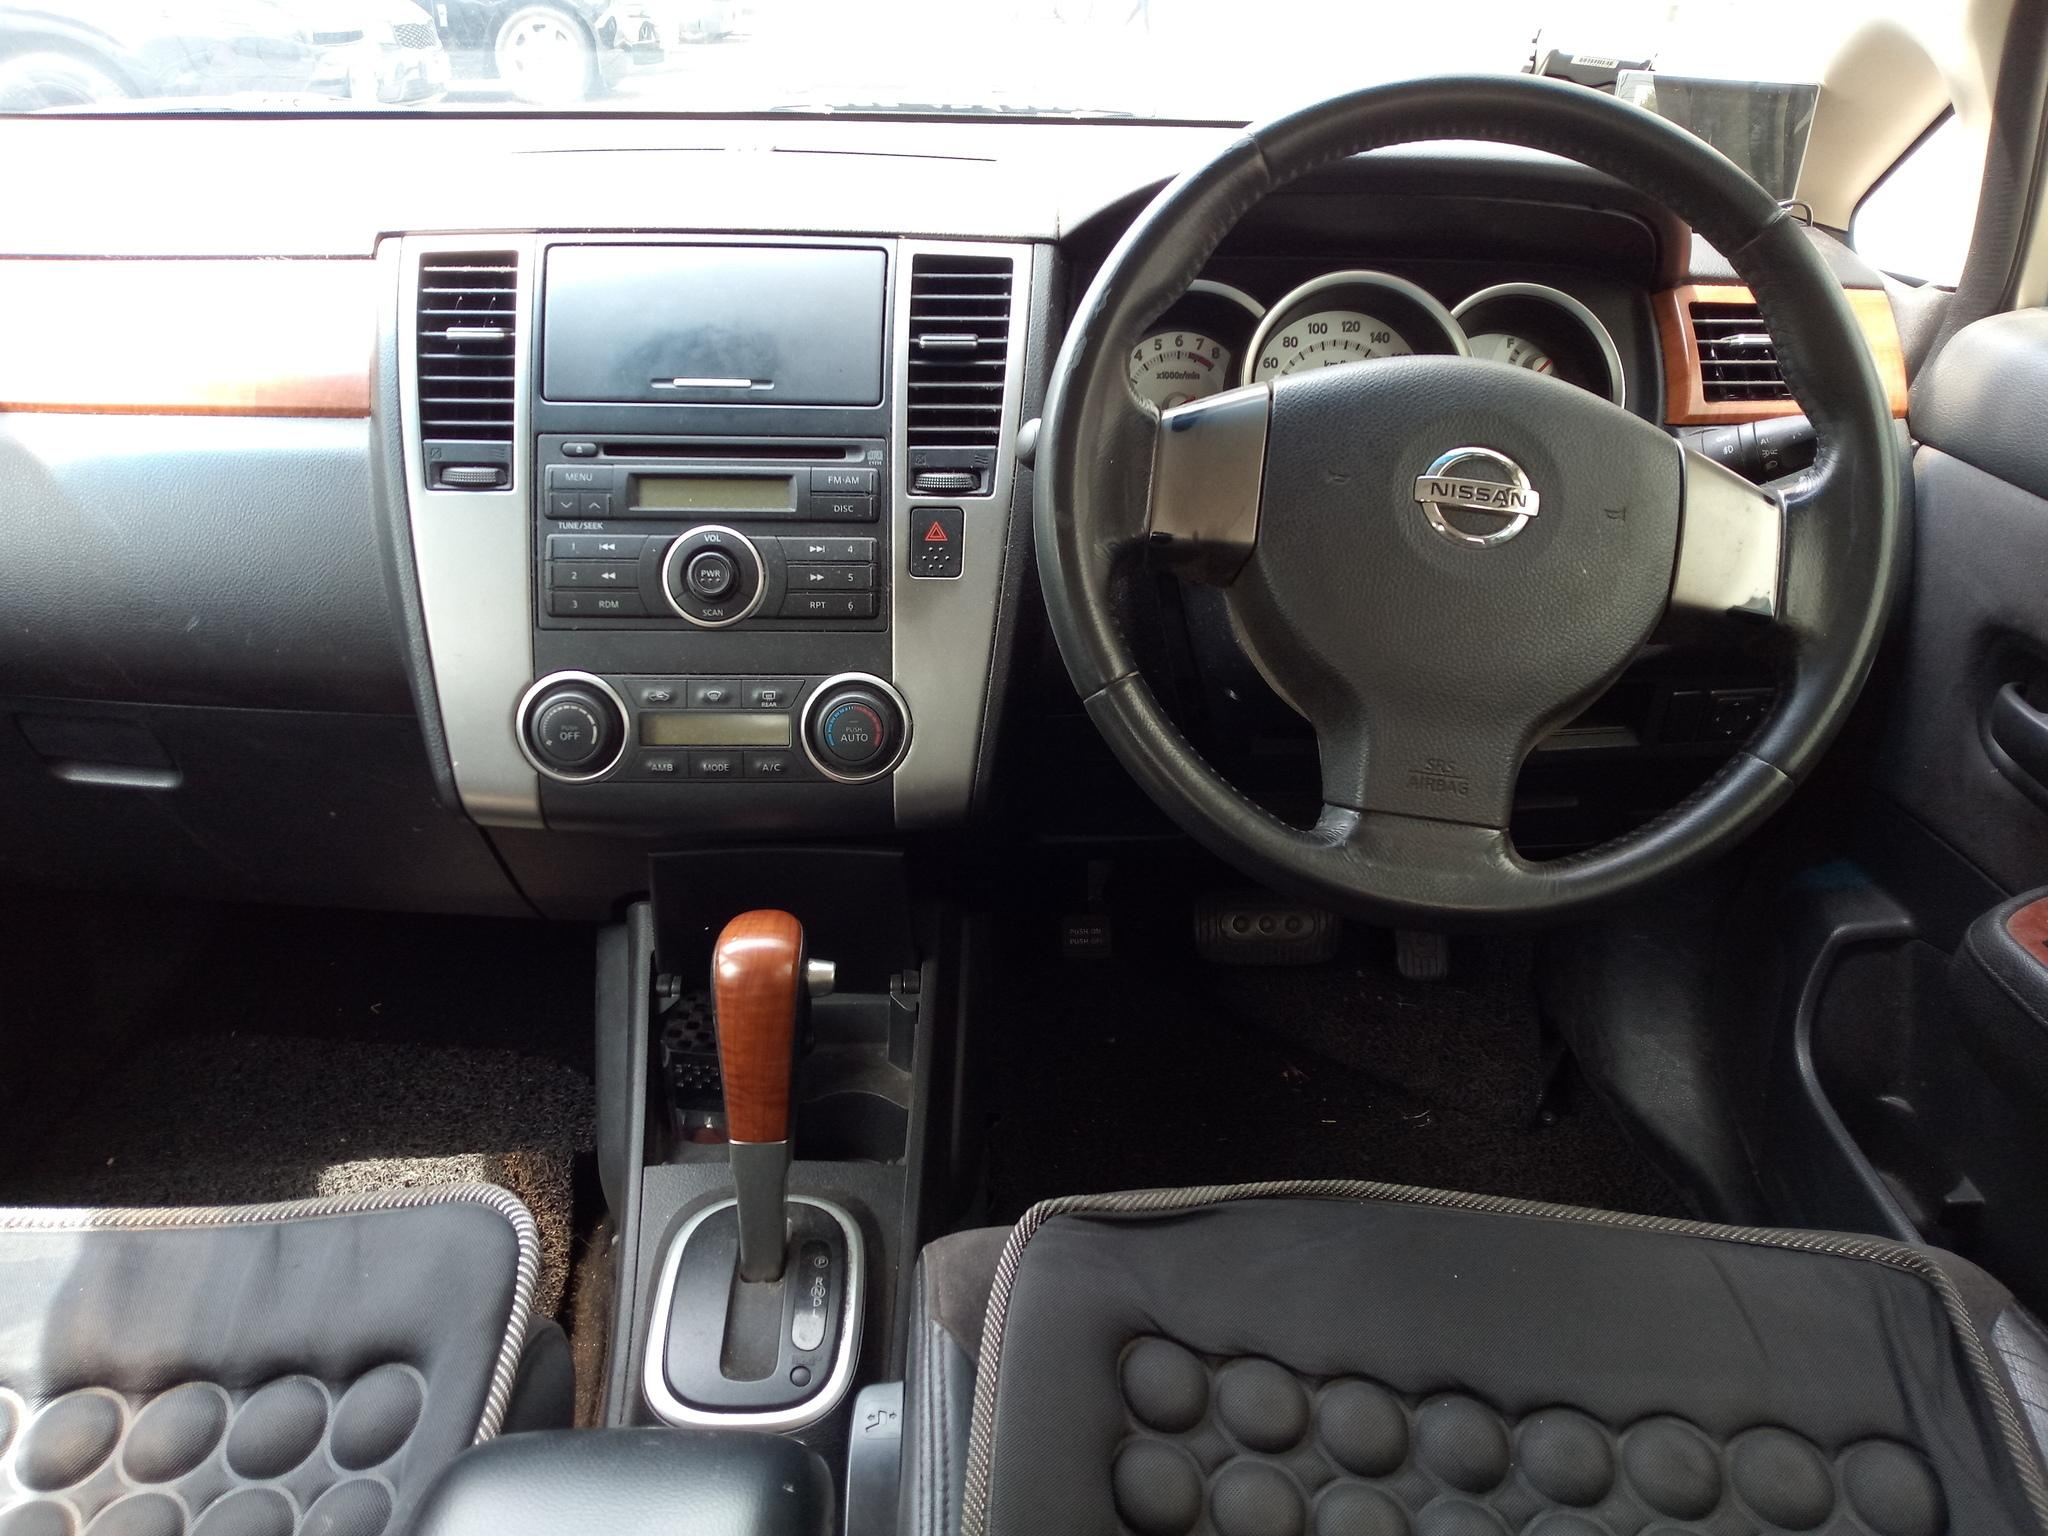 Nissan Latio 1.5A • Best rates, full servicing provided!